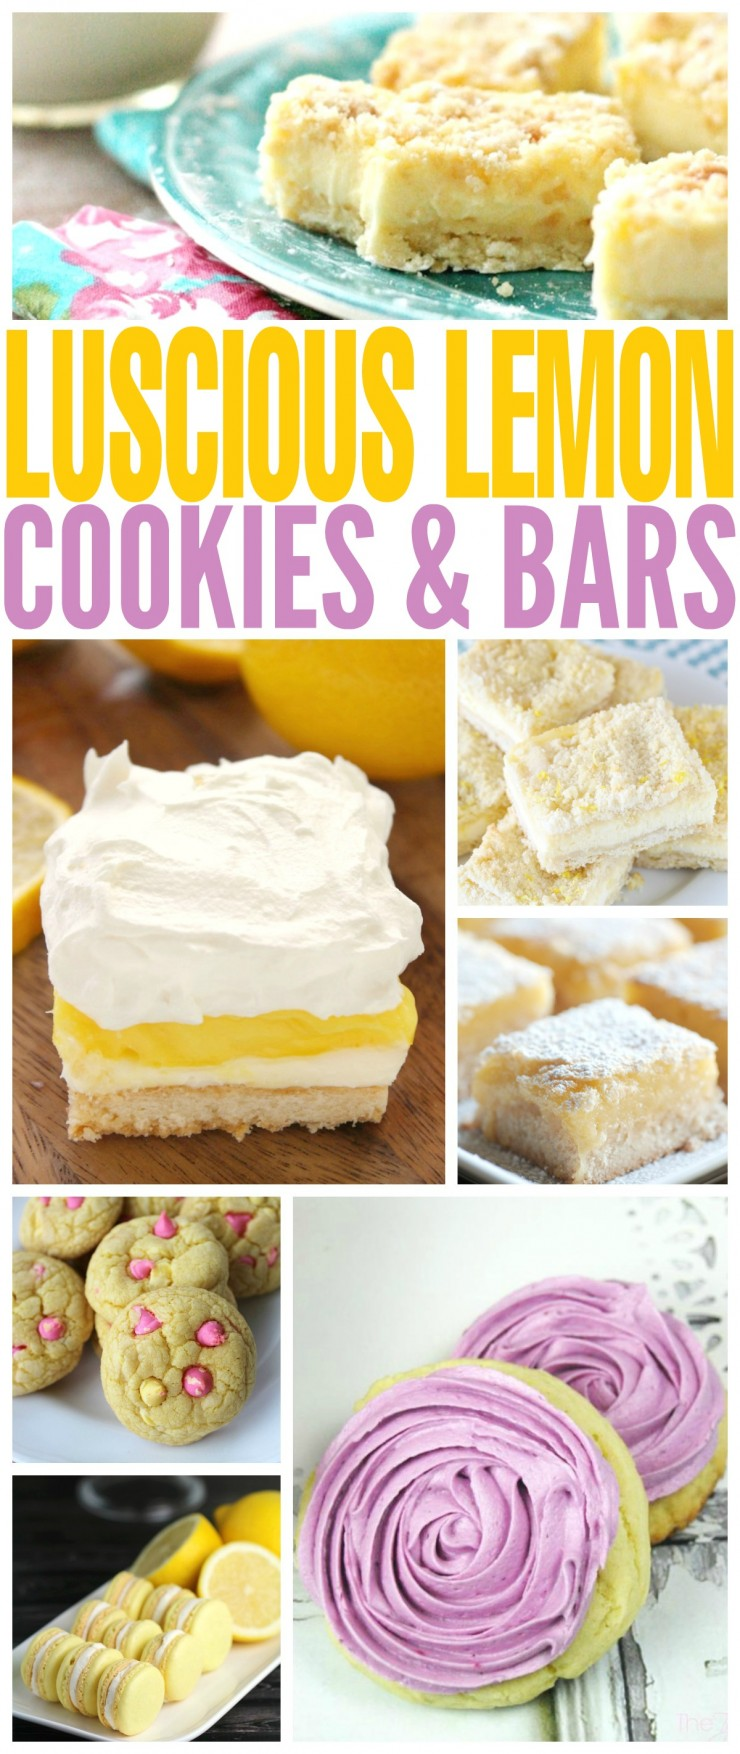 These 25 luscious lemon cookies and bars are melt-in-your mouth packed full of flavour and lemony goodness!